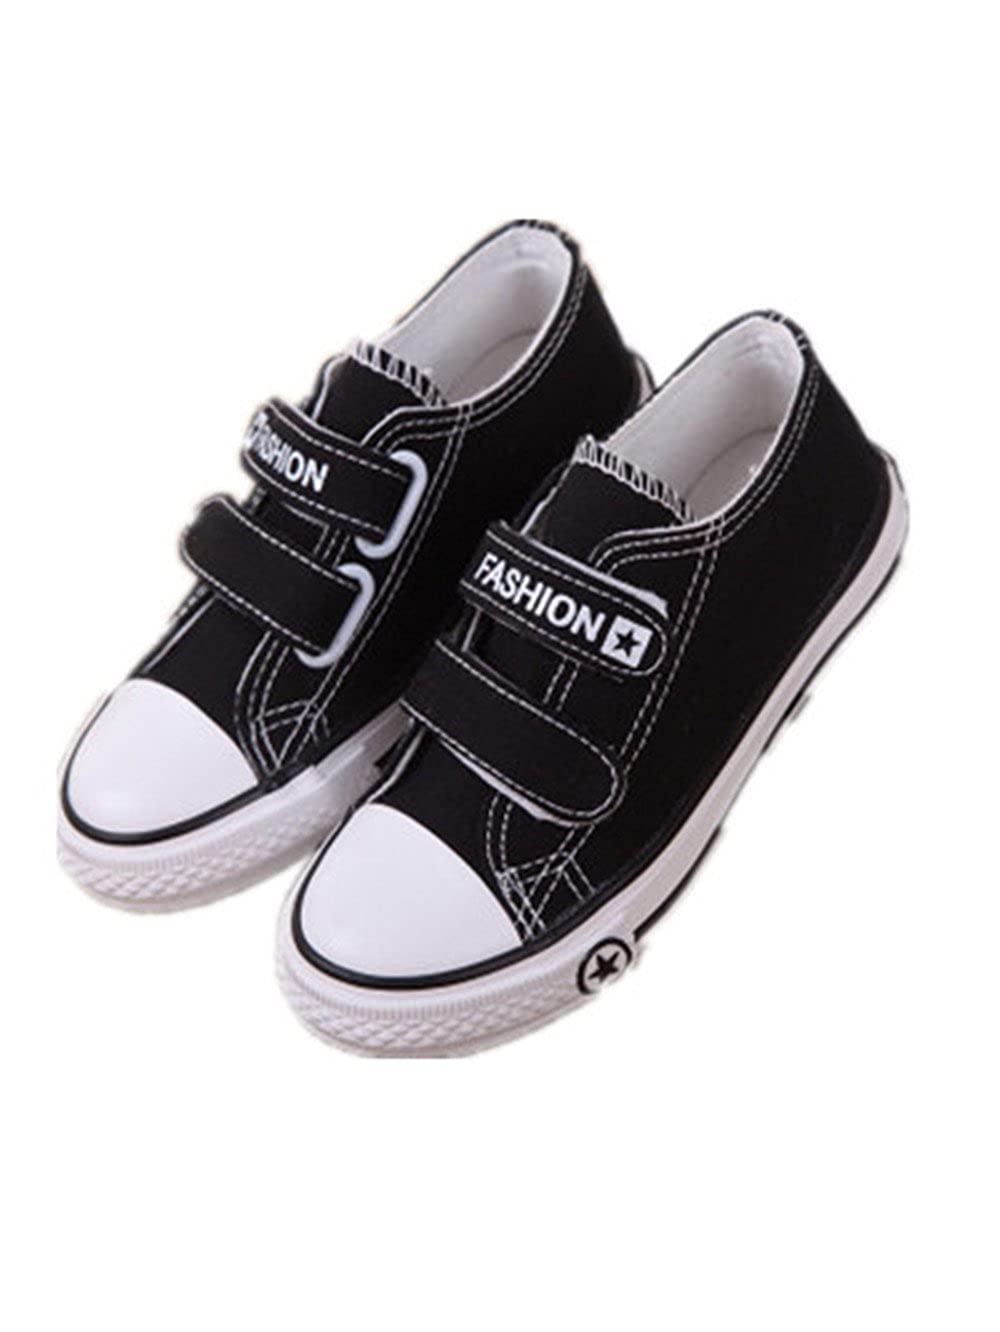 Kids Shoes for Girls Boys Sneakers Jeans Canvas Denim Running Sport Shoes